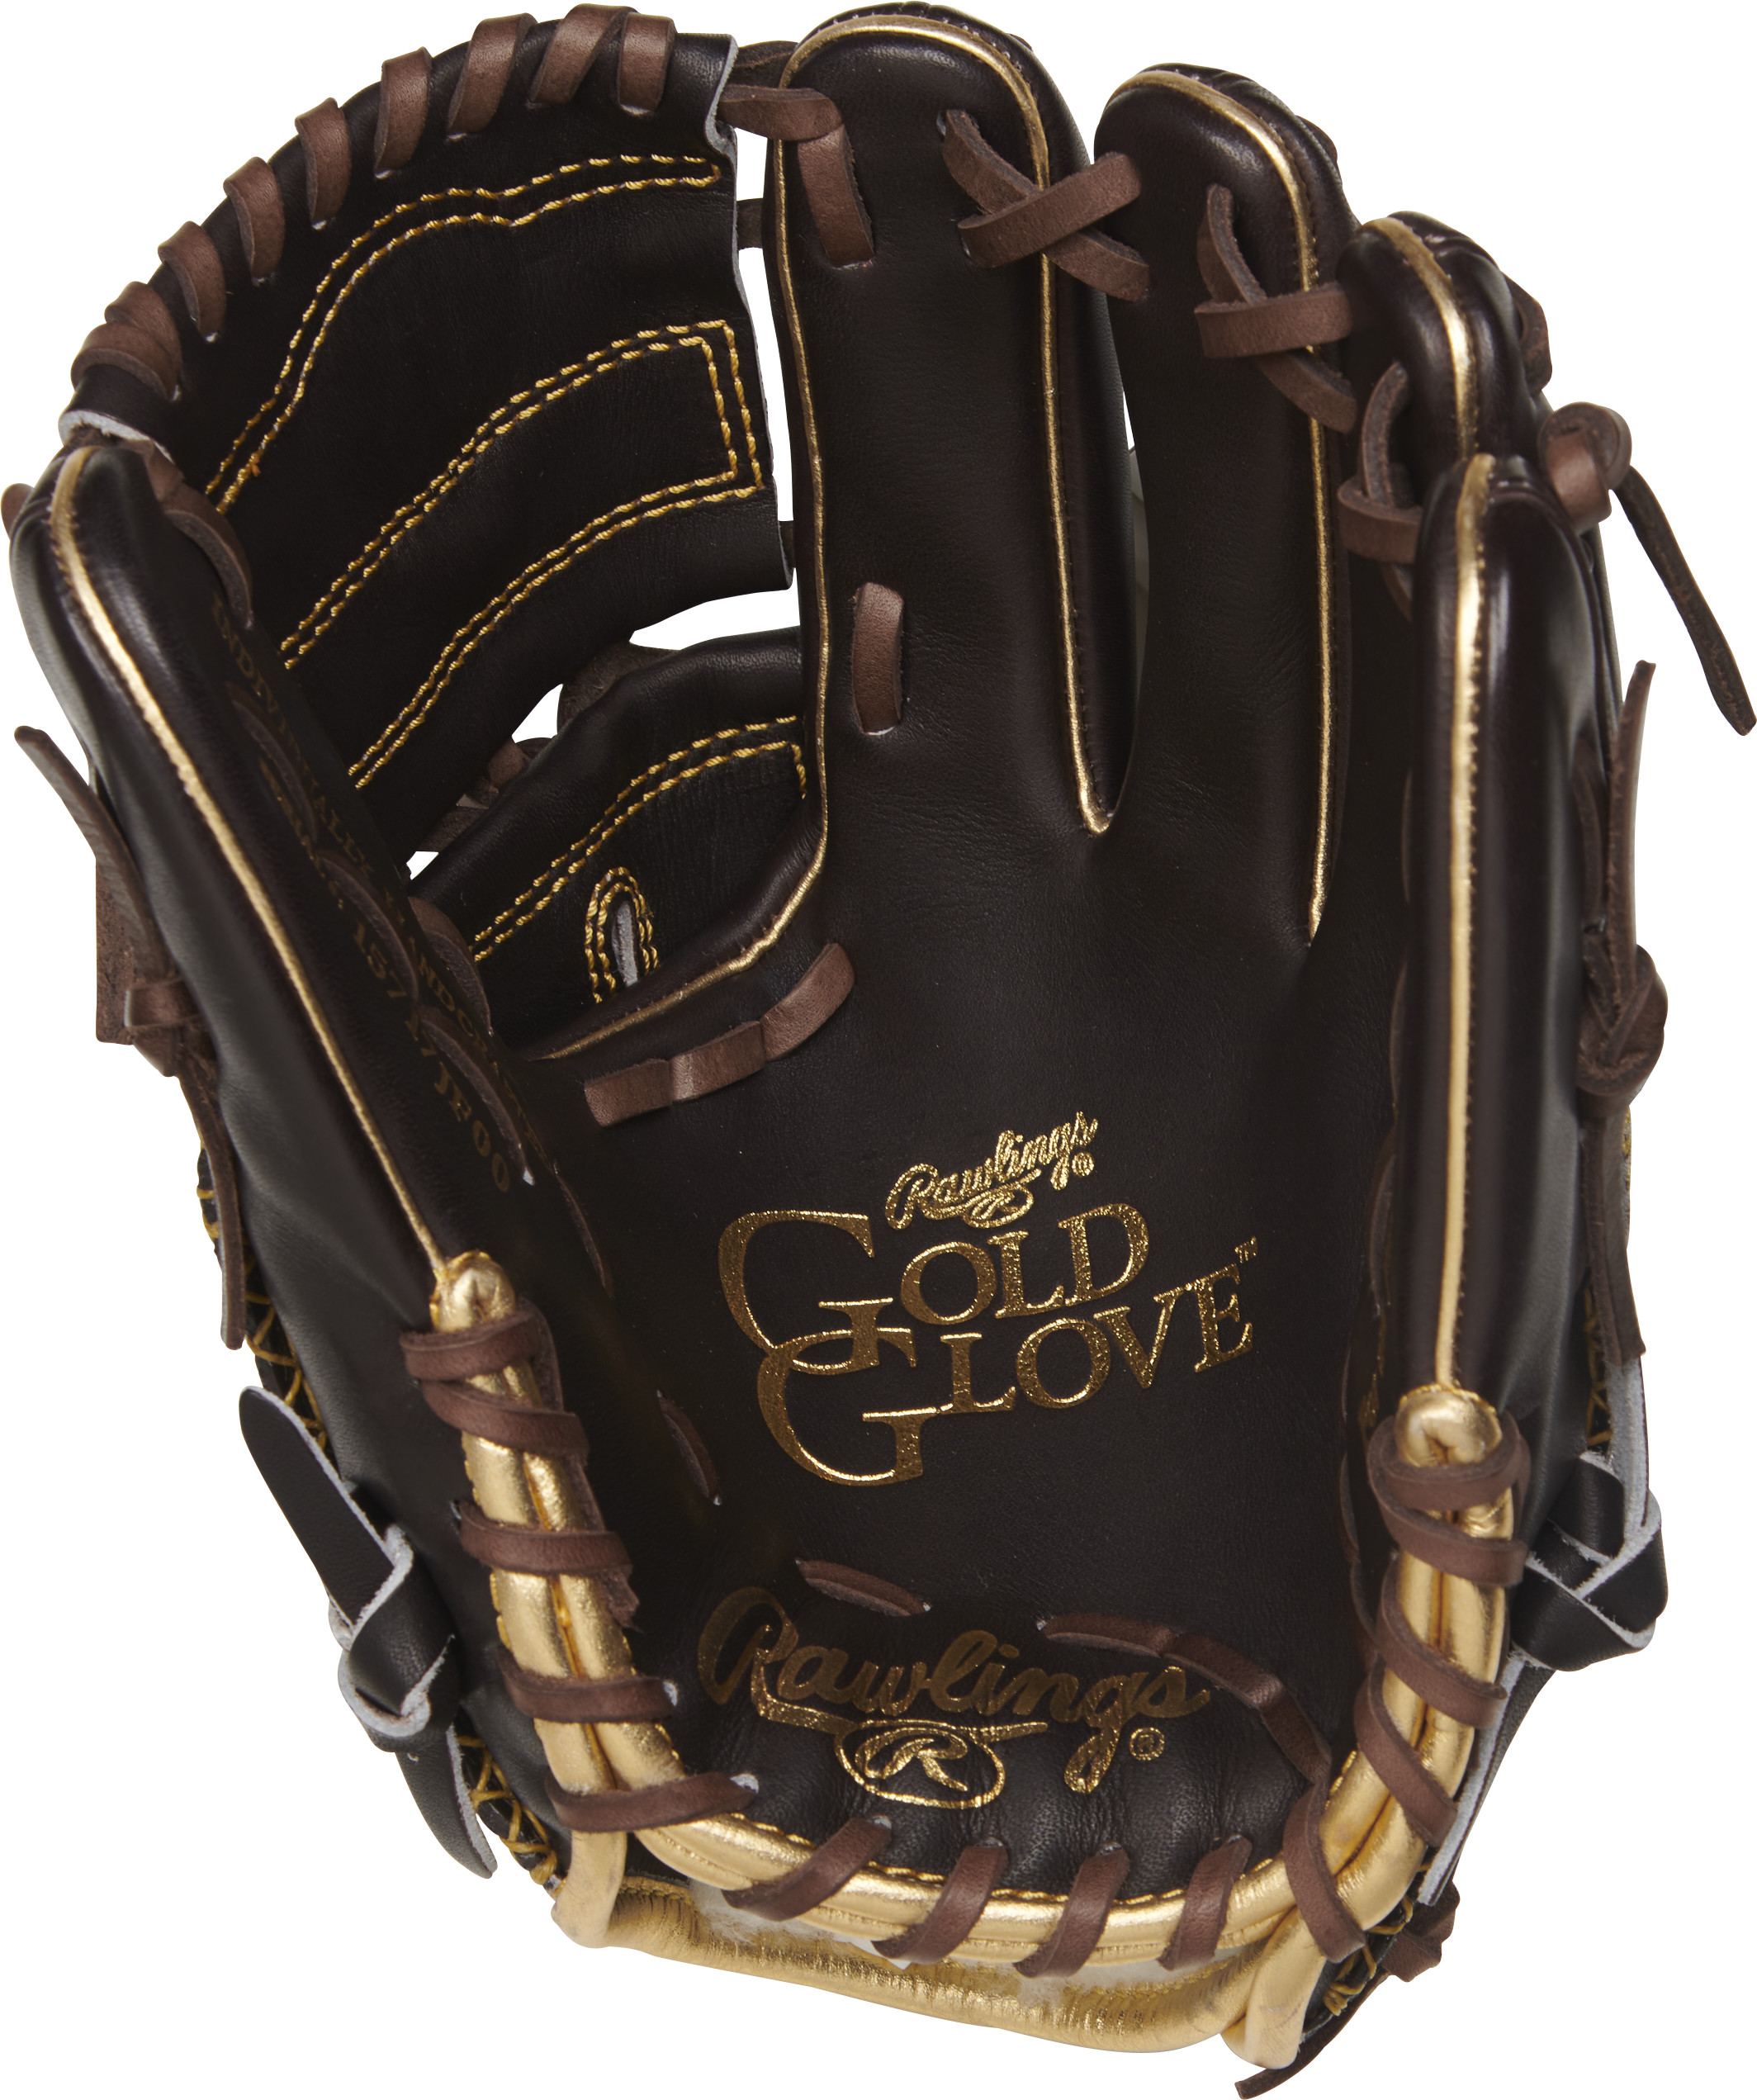 http://www.bestbatdeals.com/images/gloves/rawlings/RGG205-9MO-1.jpg